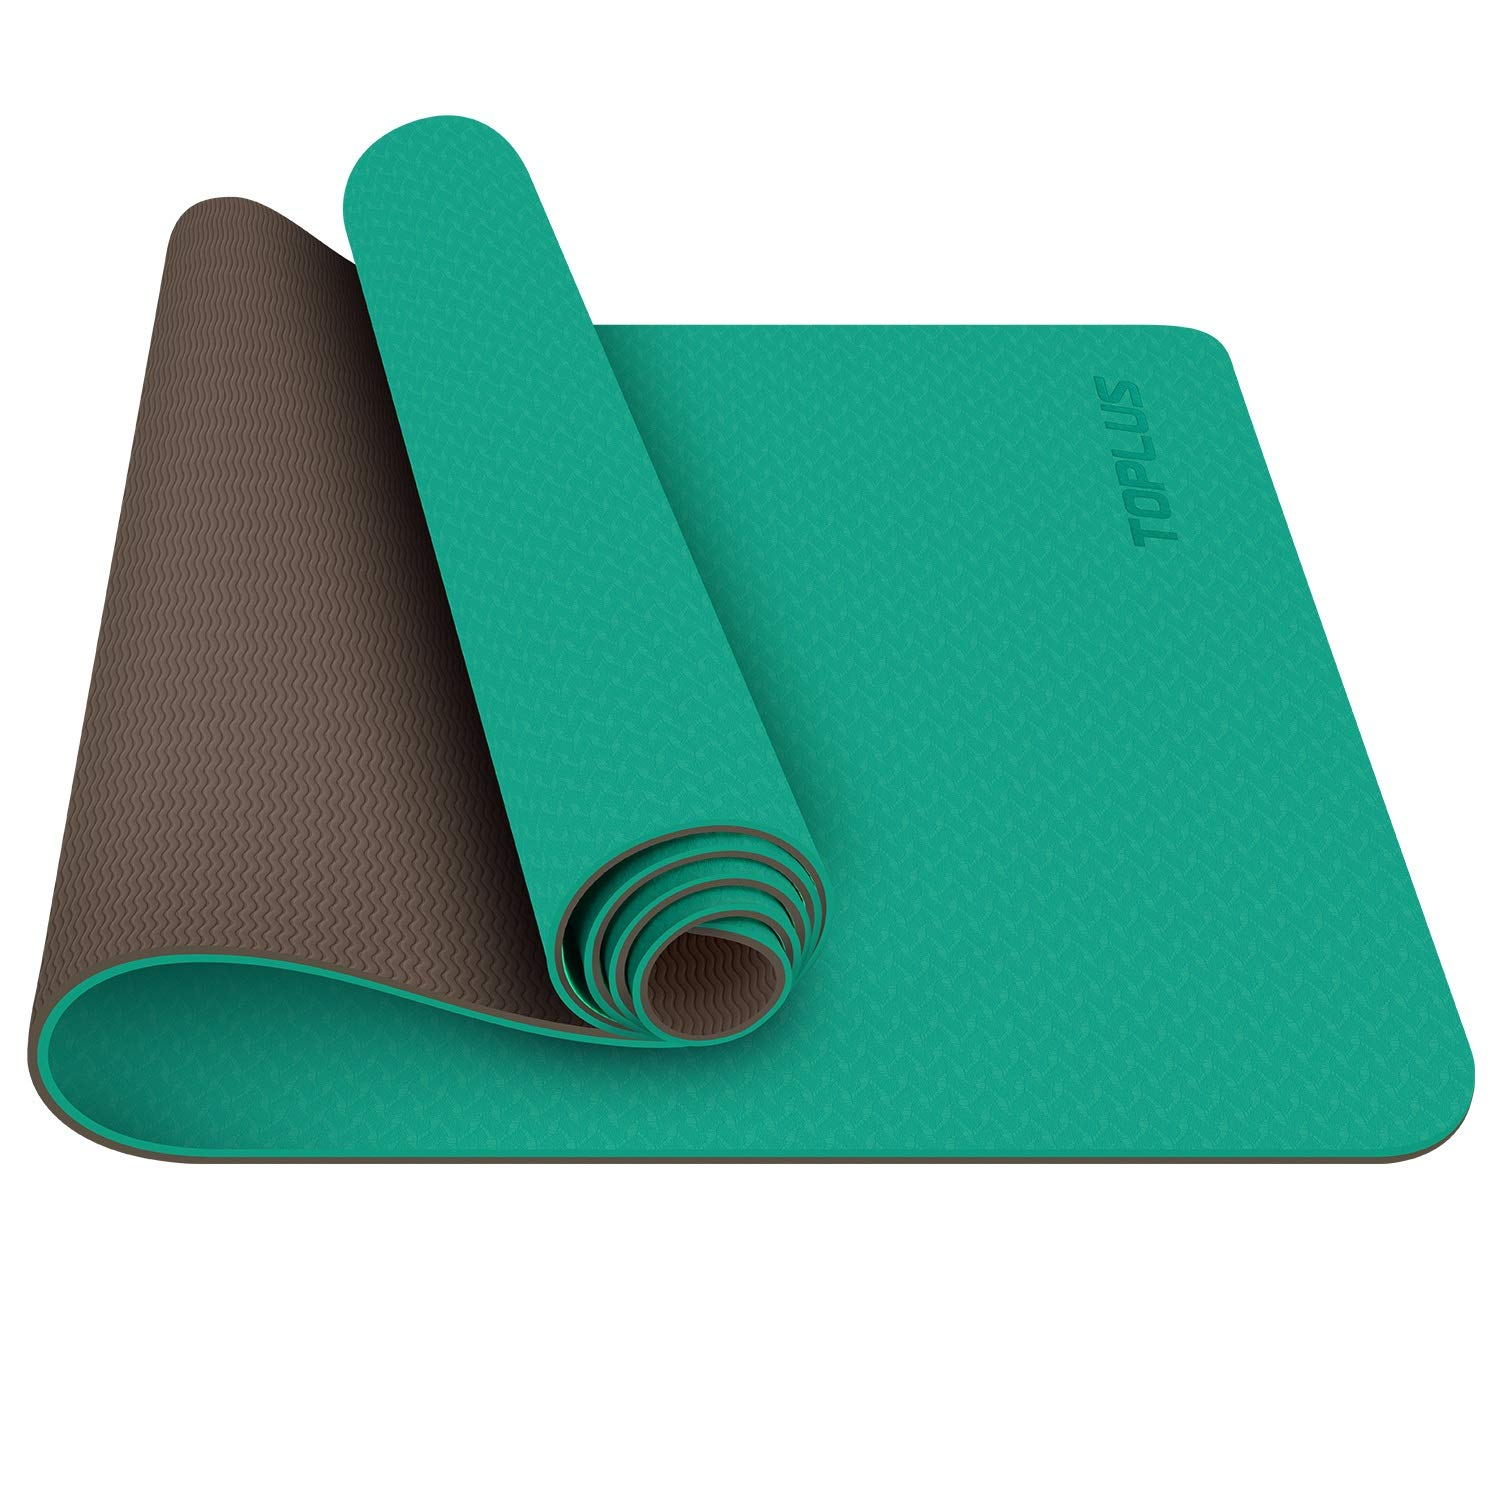 TOPLUS Yoga Mat, 1/4 inch Pro Yoga Mat TPE Eco Friendly Non Slip Fitness Exercise Mat with Carrying Strap-Workout Mat for Yoga, Pilates and Floor Exercises (Green) by TOPLUS (Image #2)